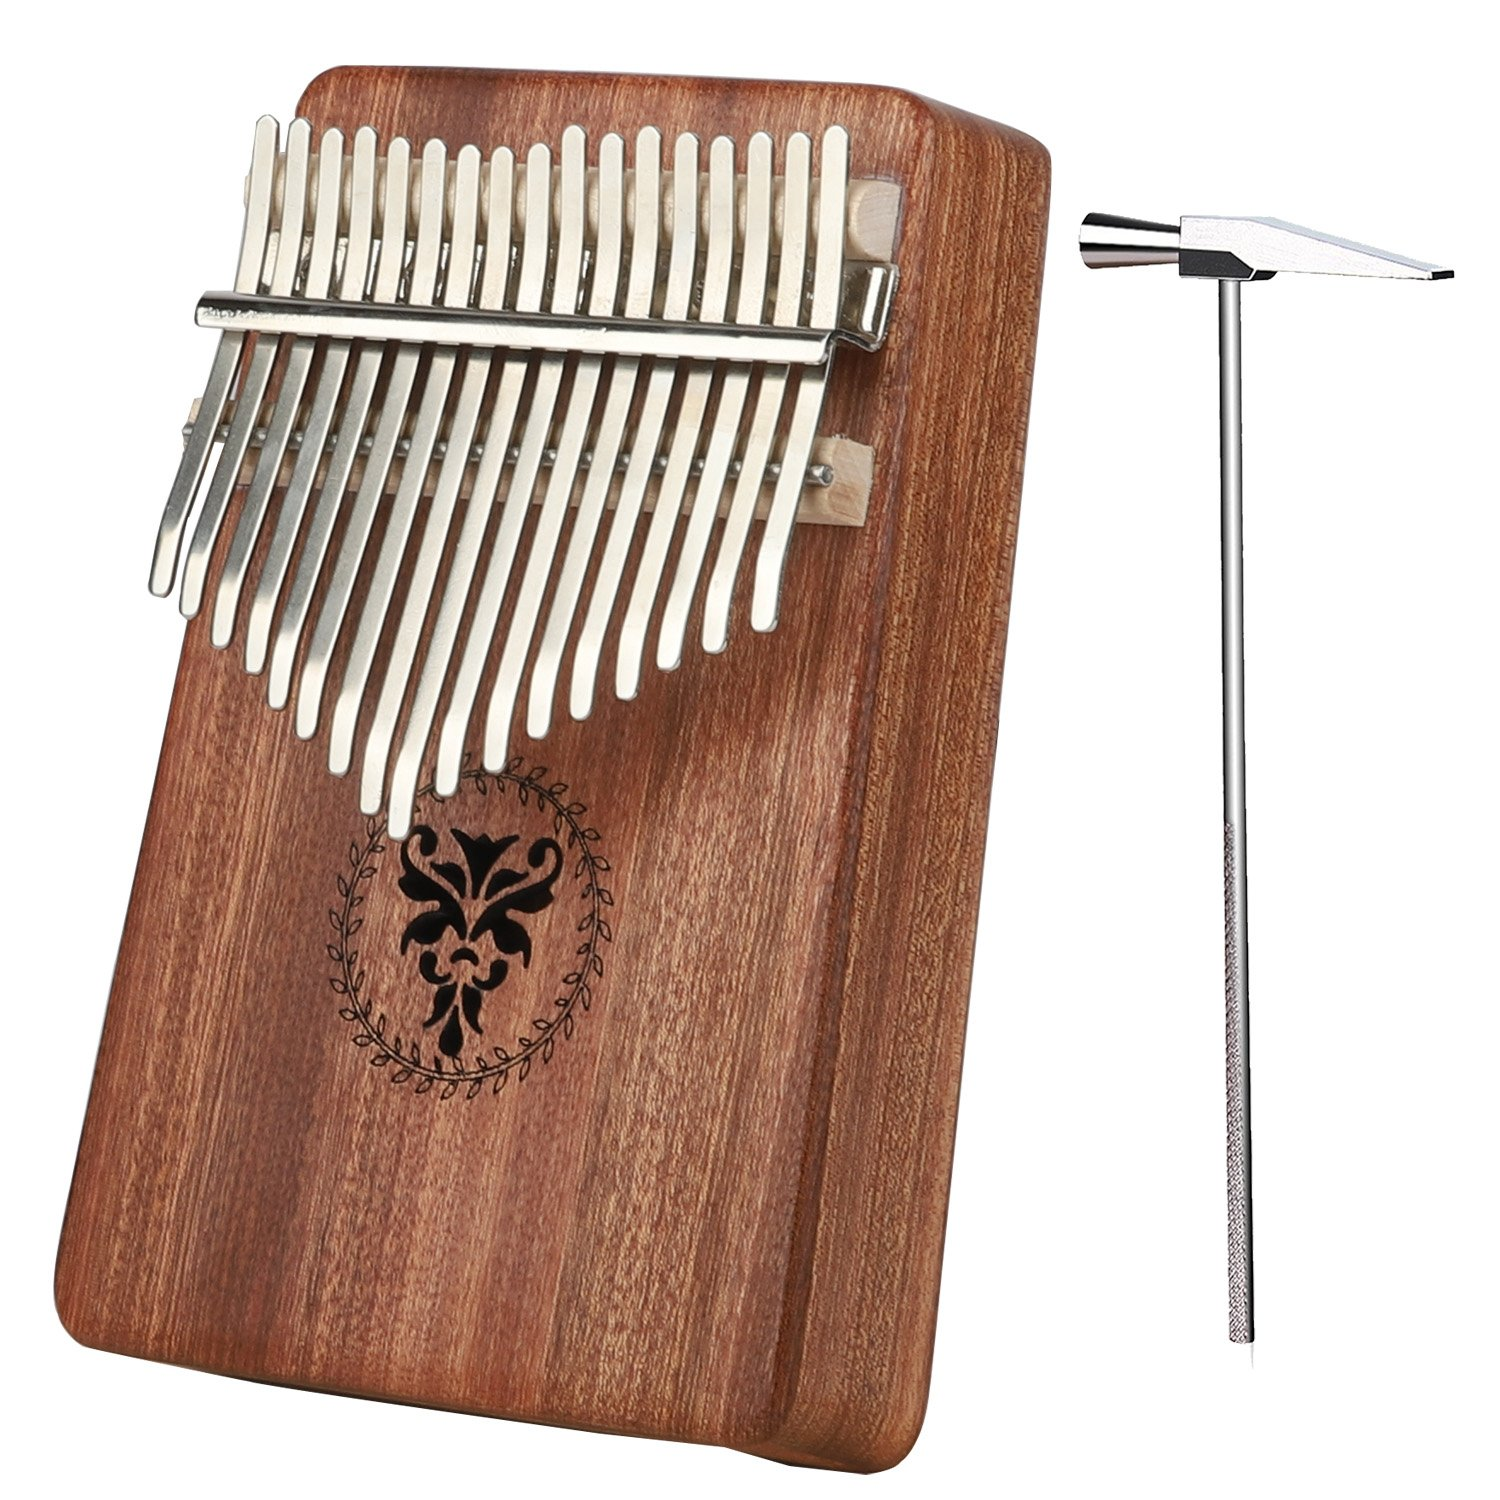 Kalimba Thumb Pianos 17 keys African Mahogany Solid Body with Tutorial, Tune Hammer and Portable Bag, Easy to Learn HOMEFUN JK-1718